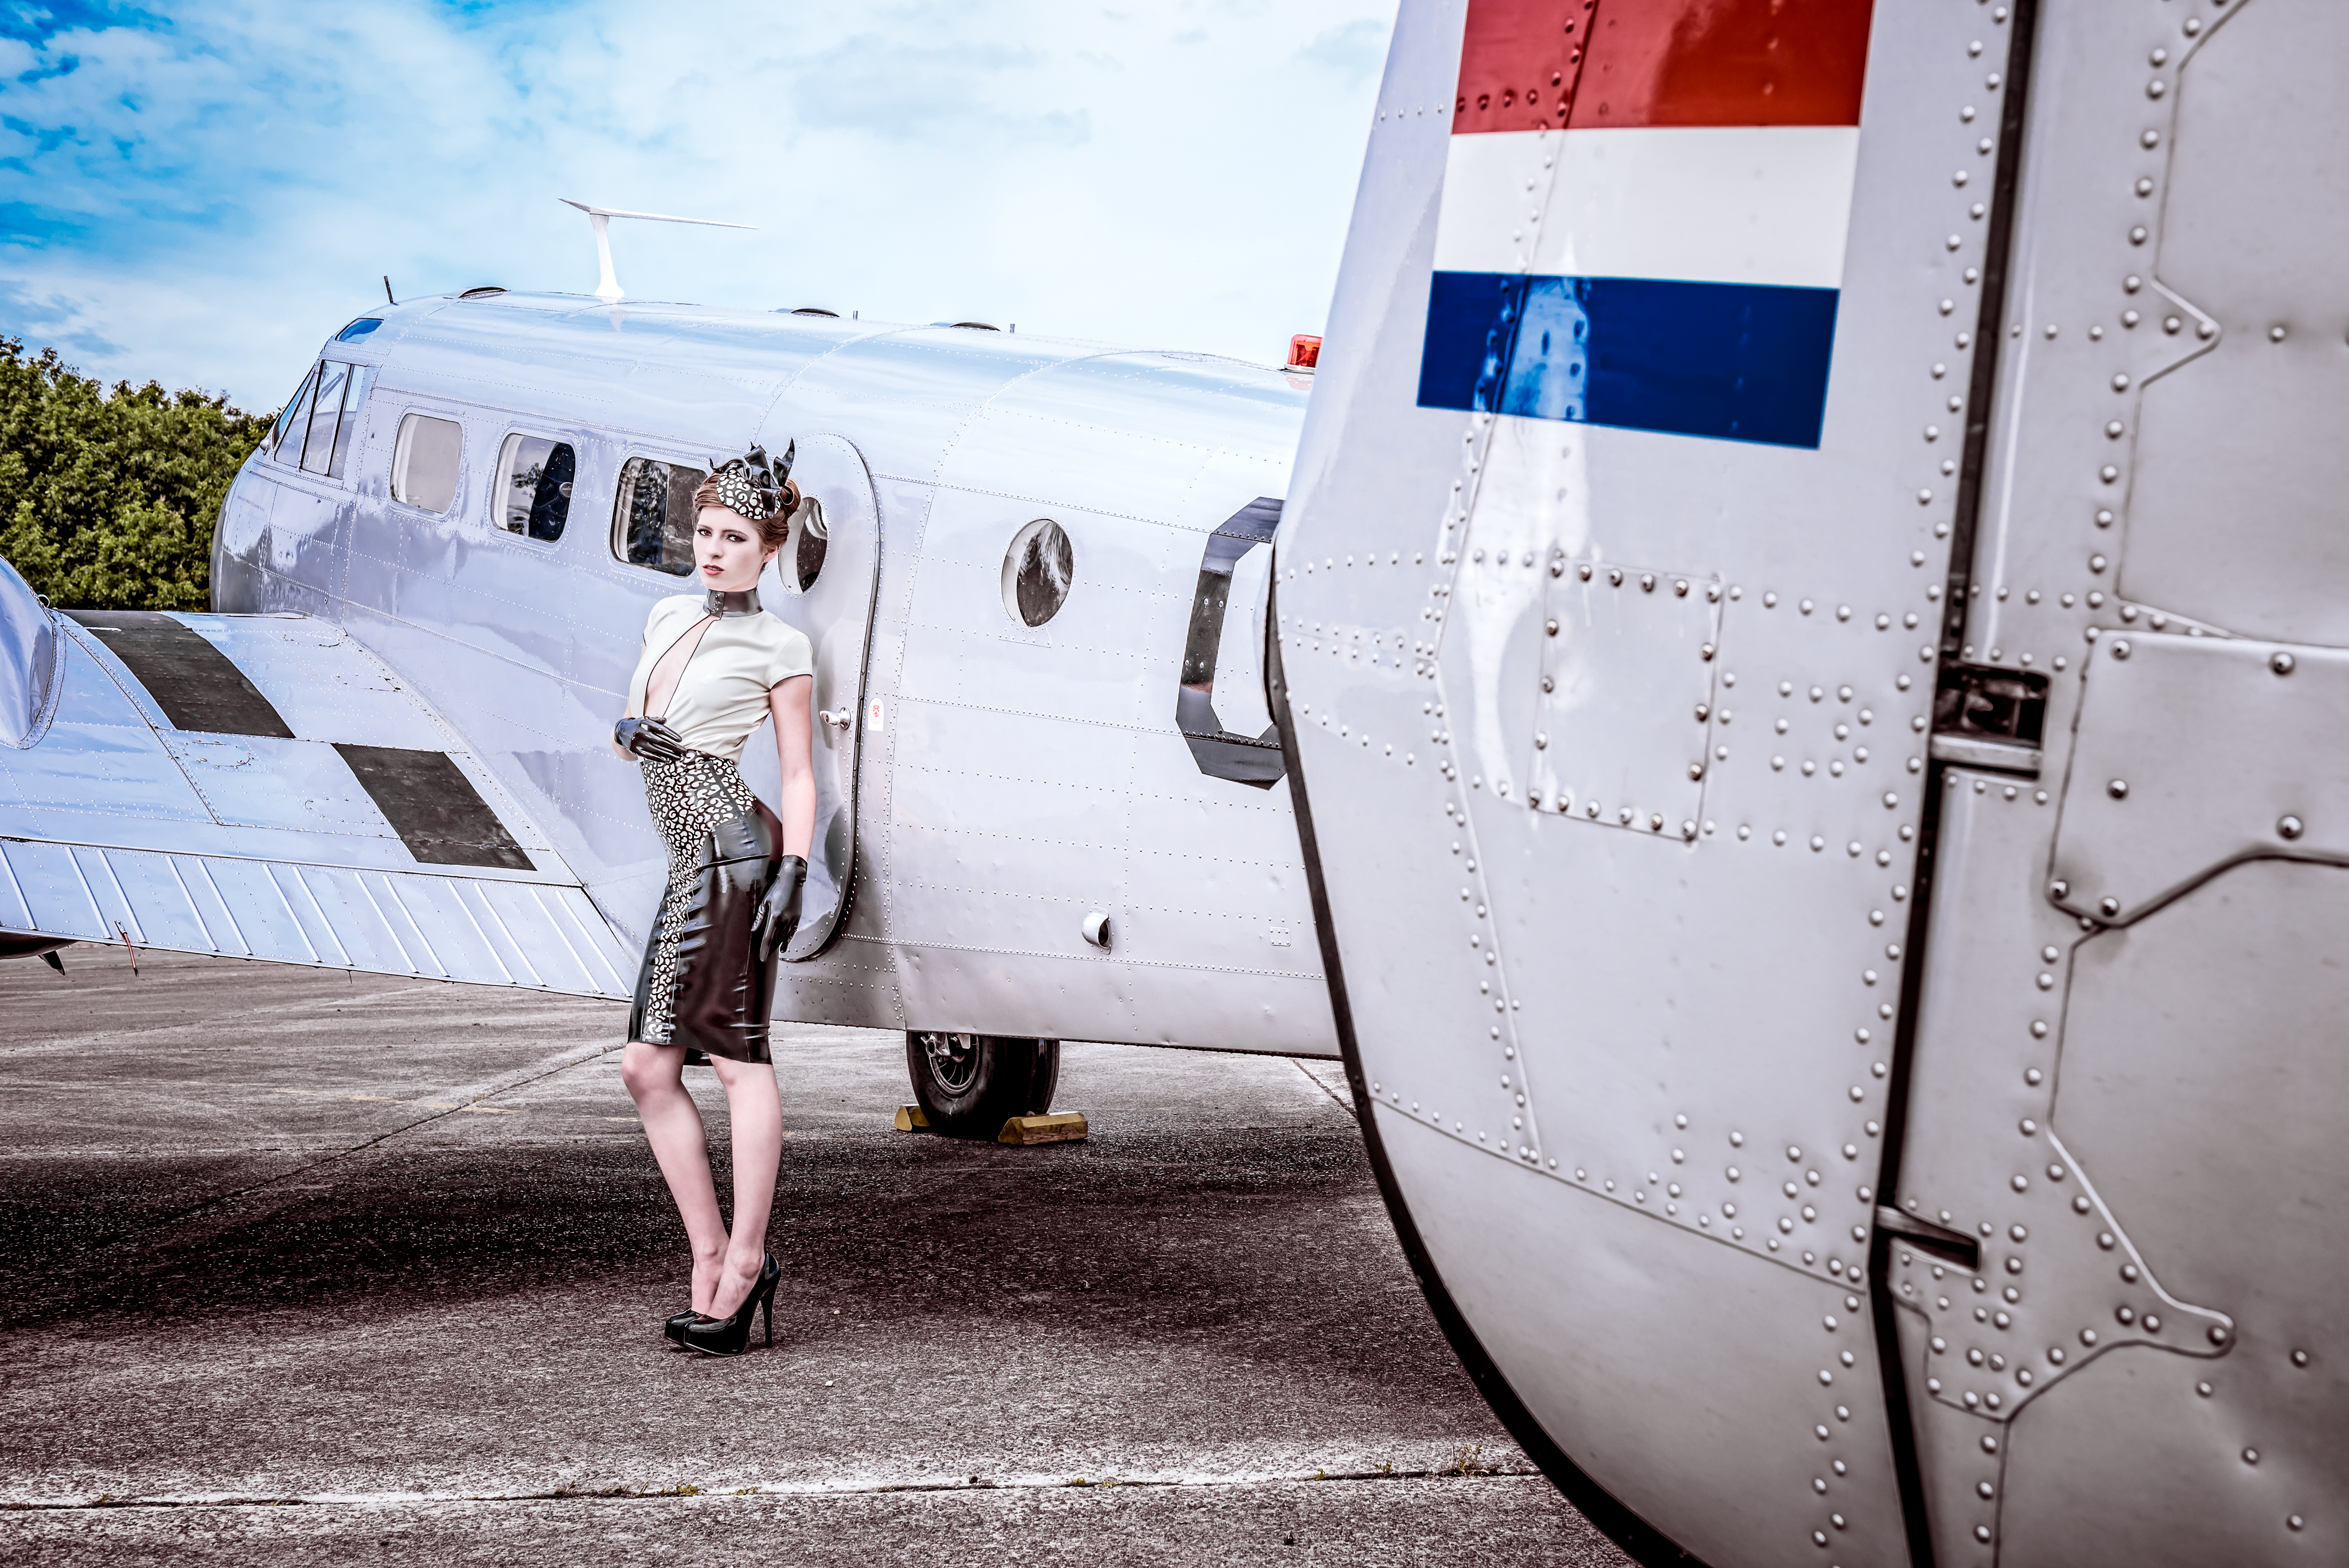 Airplanes-&-babes-03-01